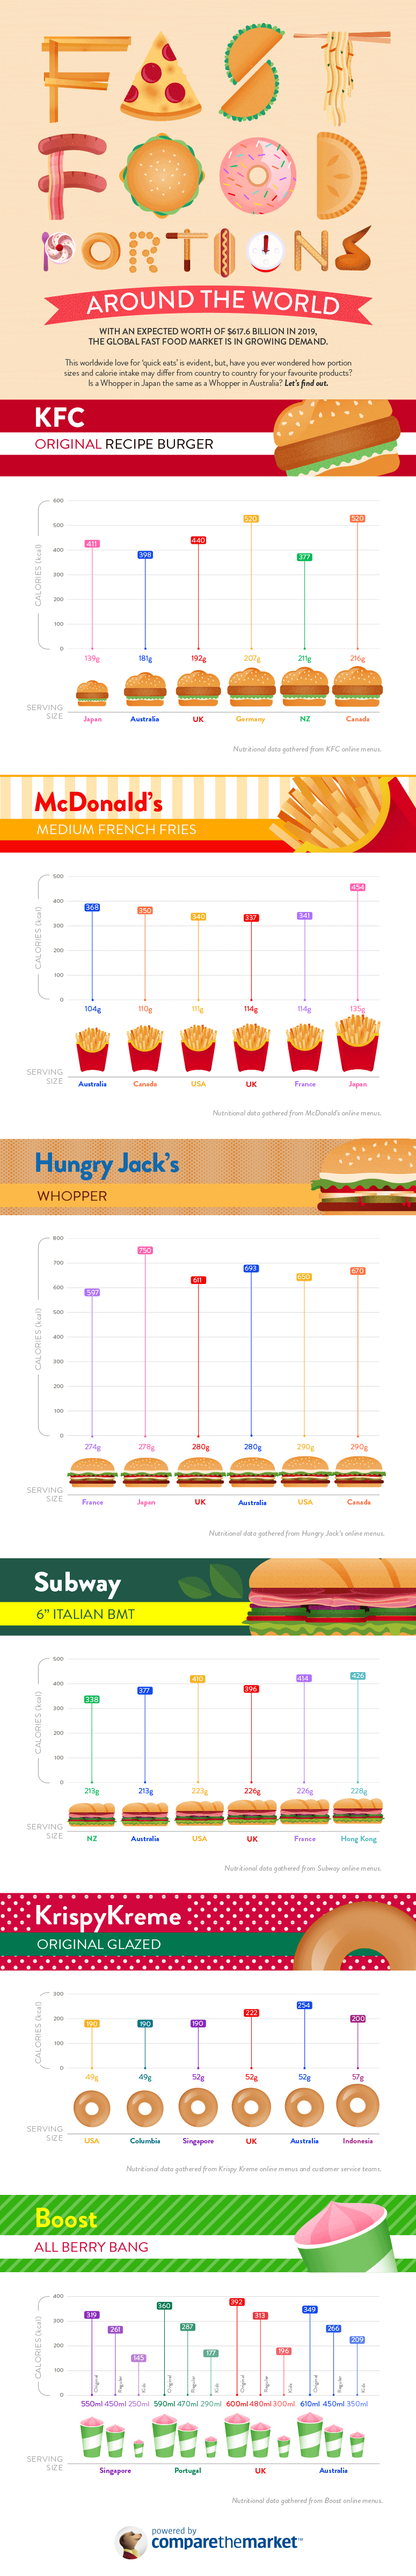 Fast food proportions australia infographic